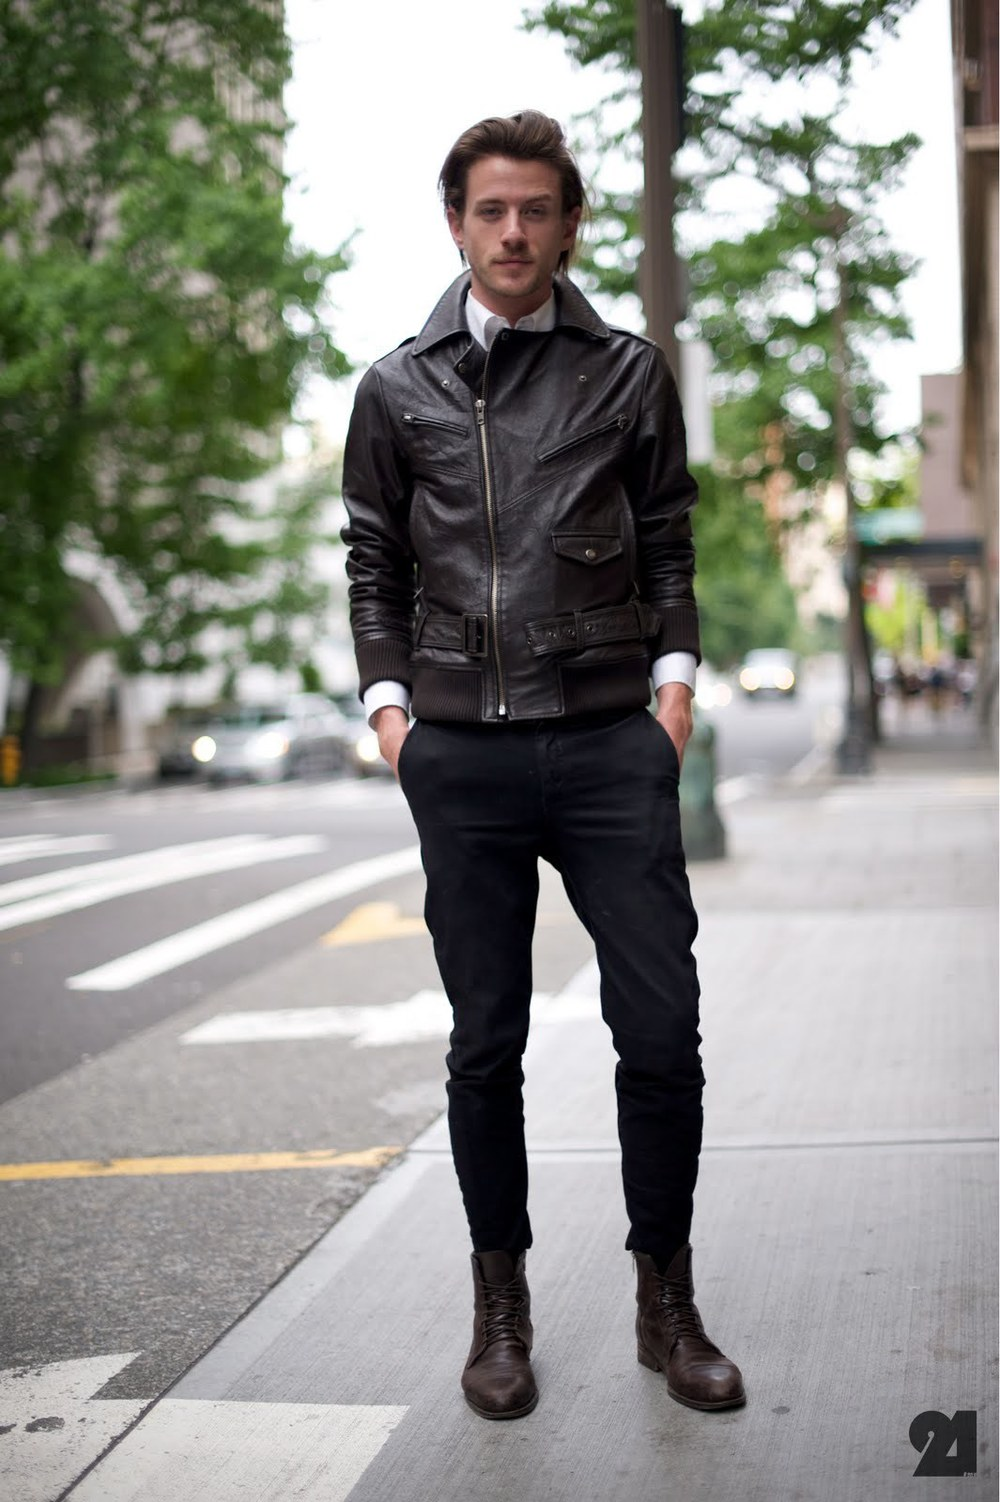 chris-cushingham-in-slim-fit-leather-jacket.jpg